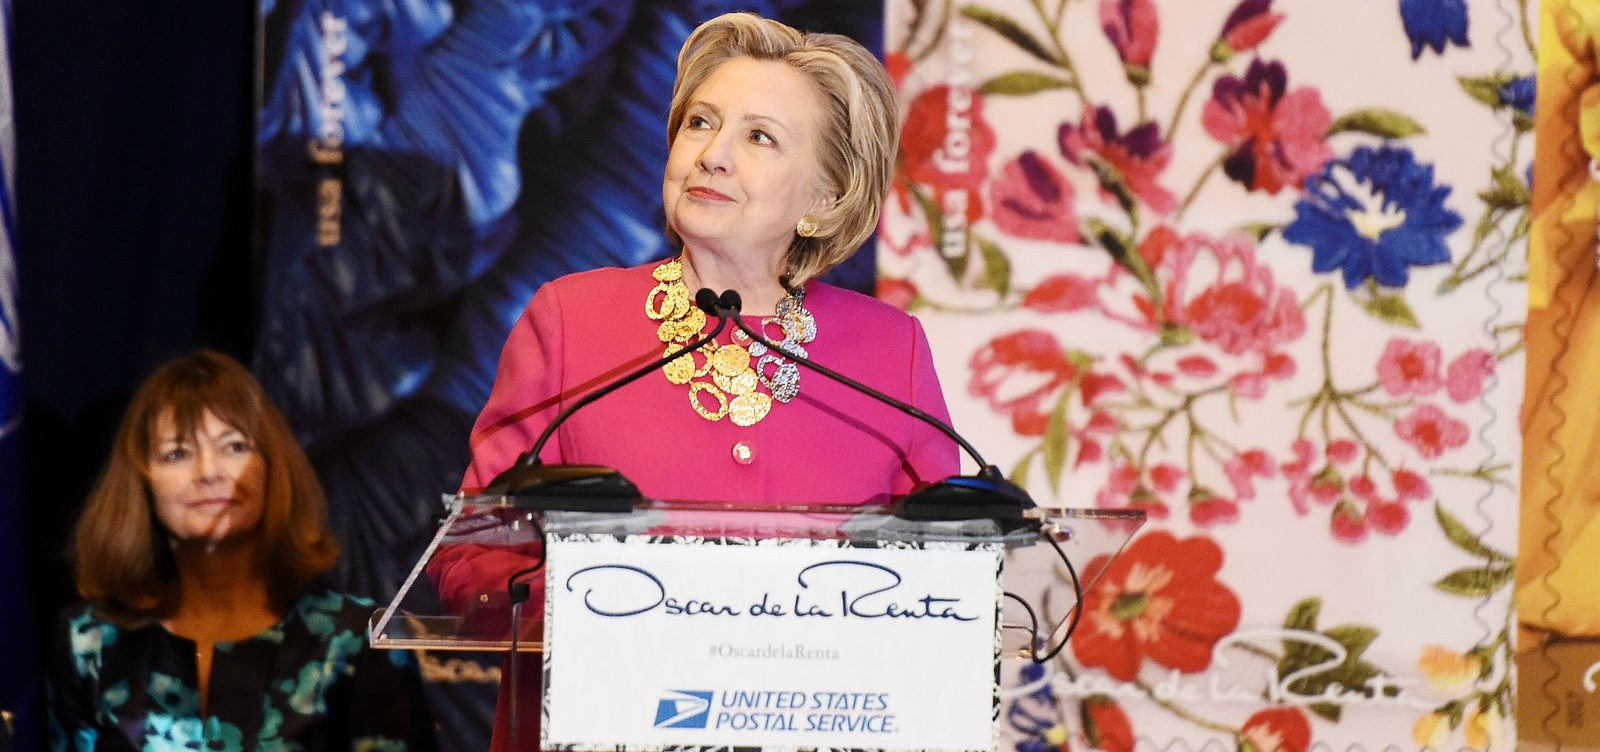 Hillary Clinton Makes Rare New York Appearance to Honor Oscar de le Renta (Video)